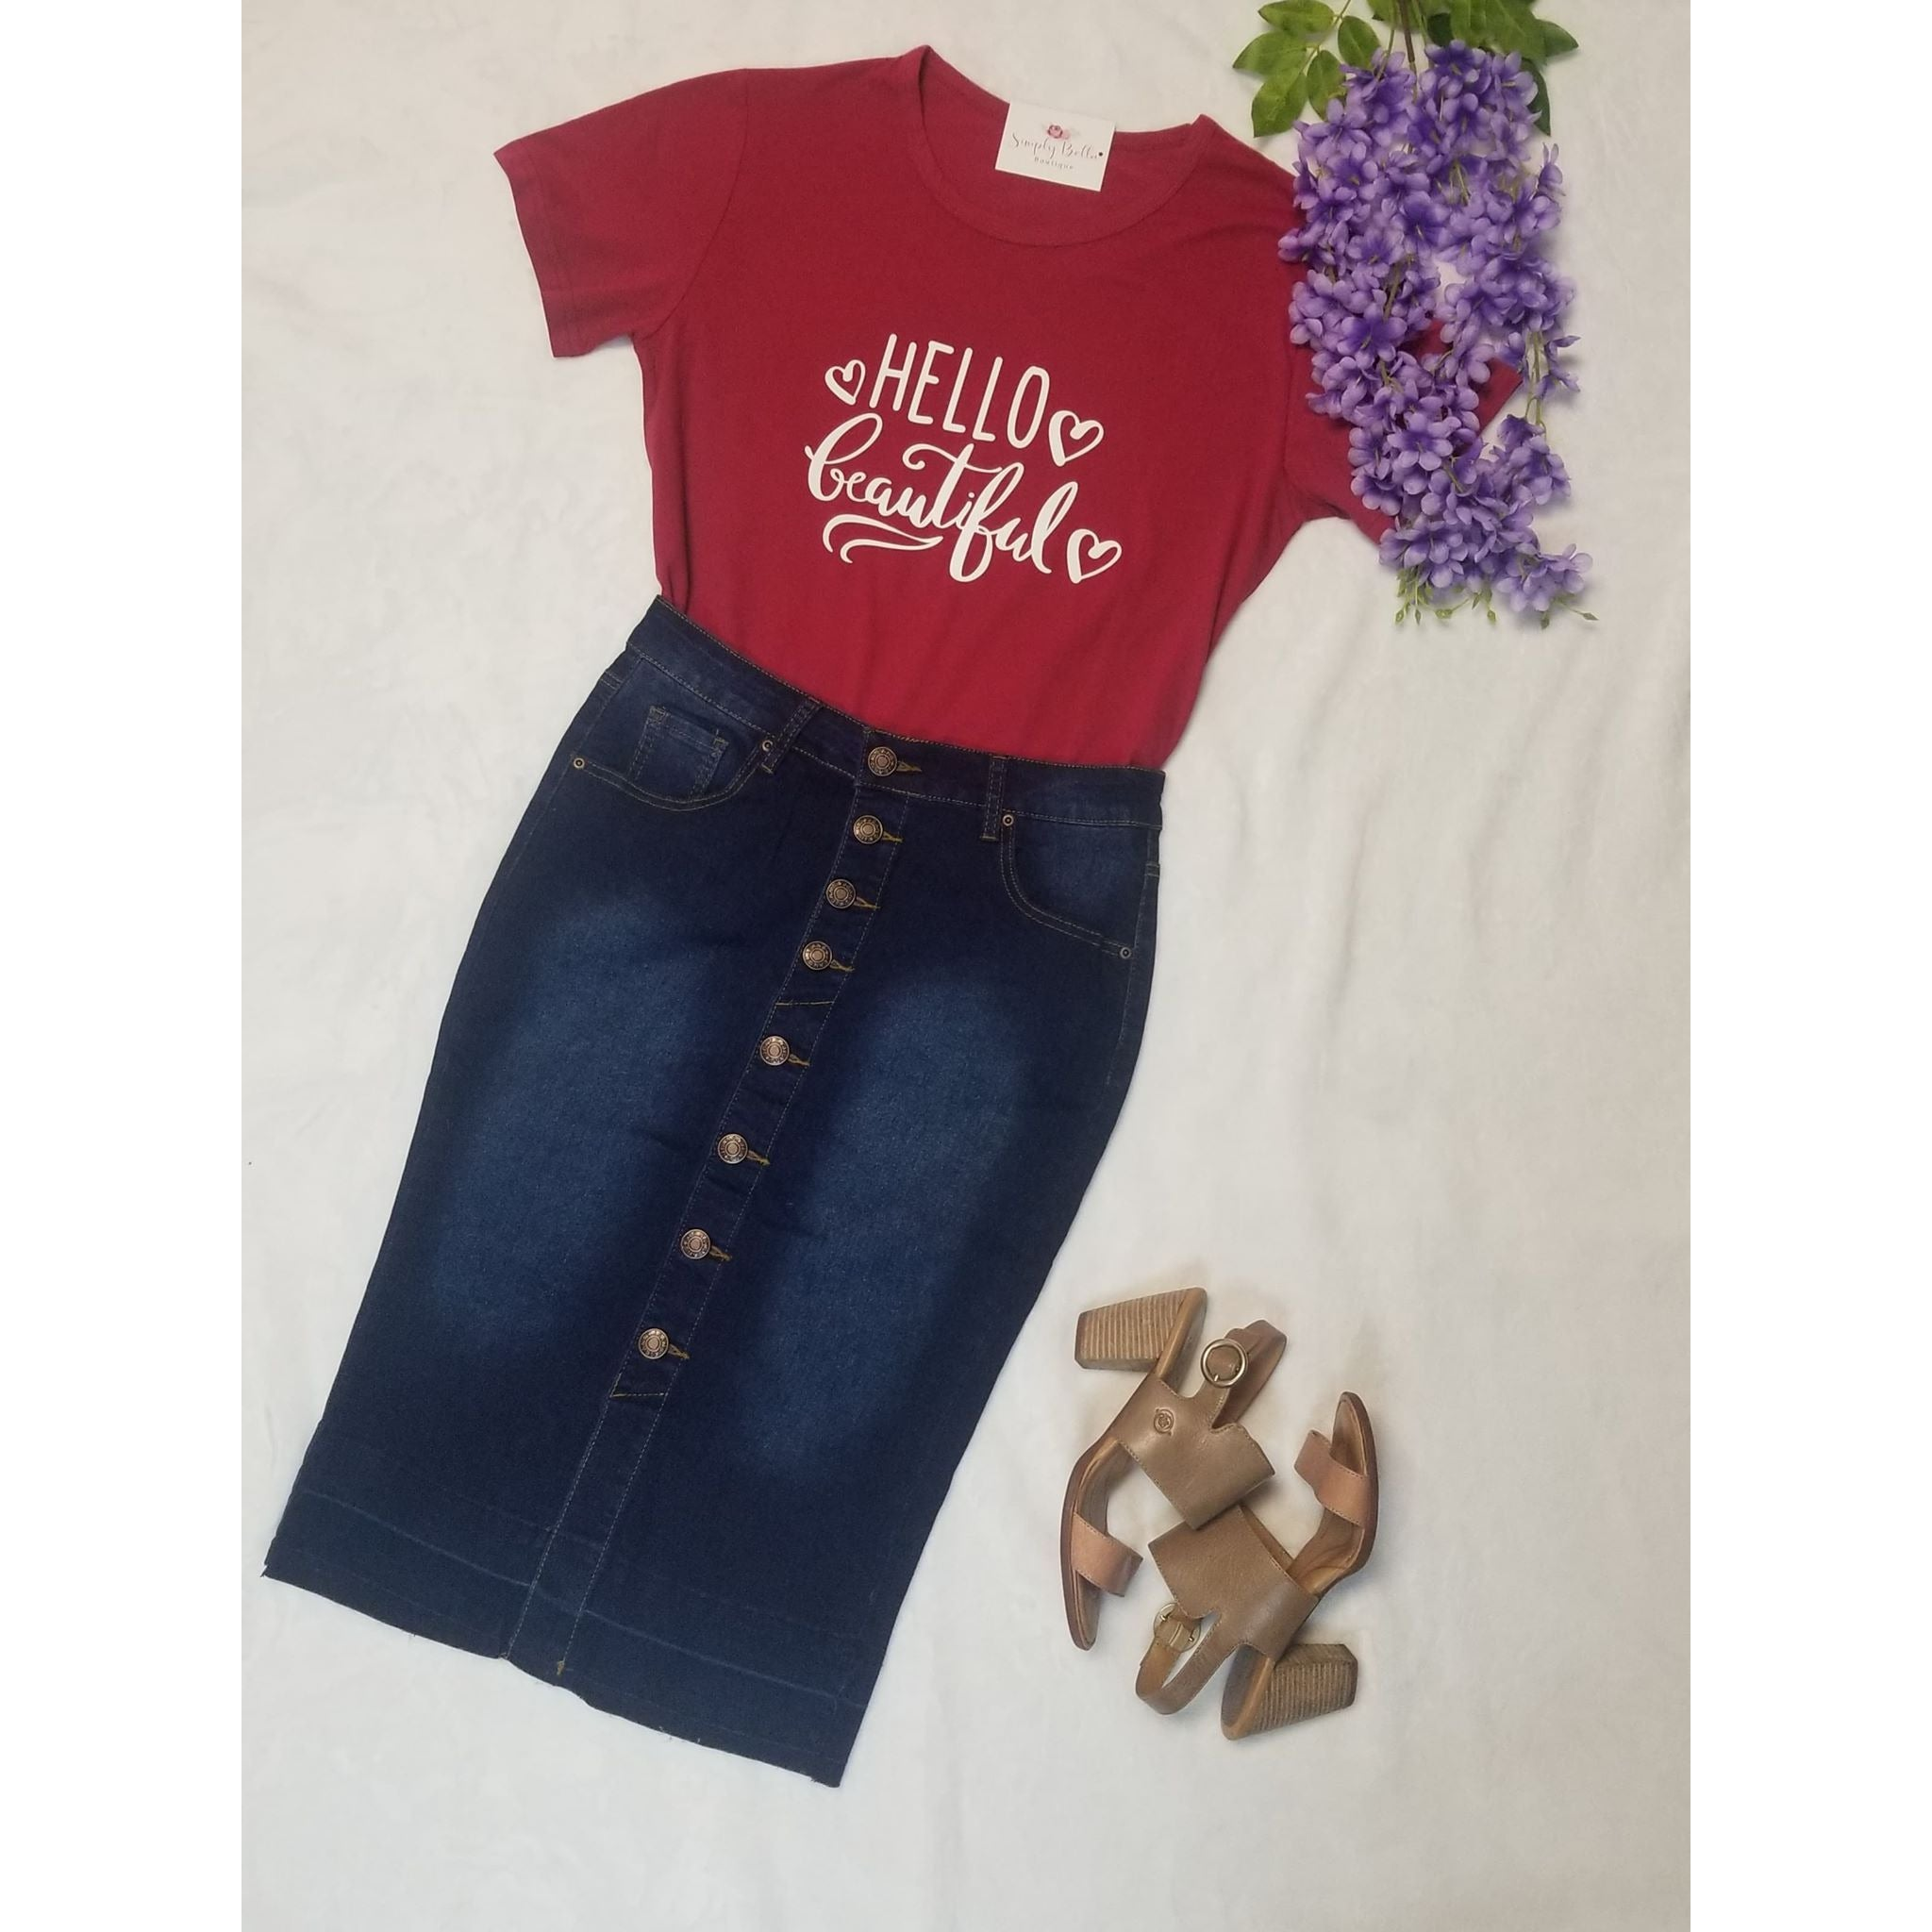 """Hello Beautiful"" in Burgundy Tee"